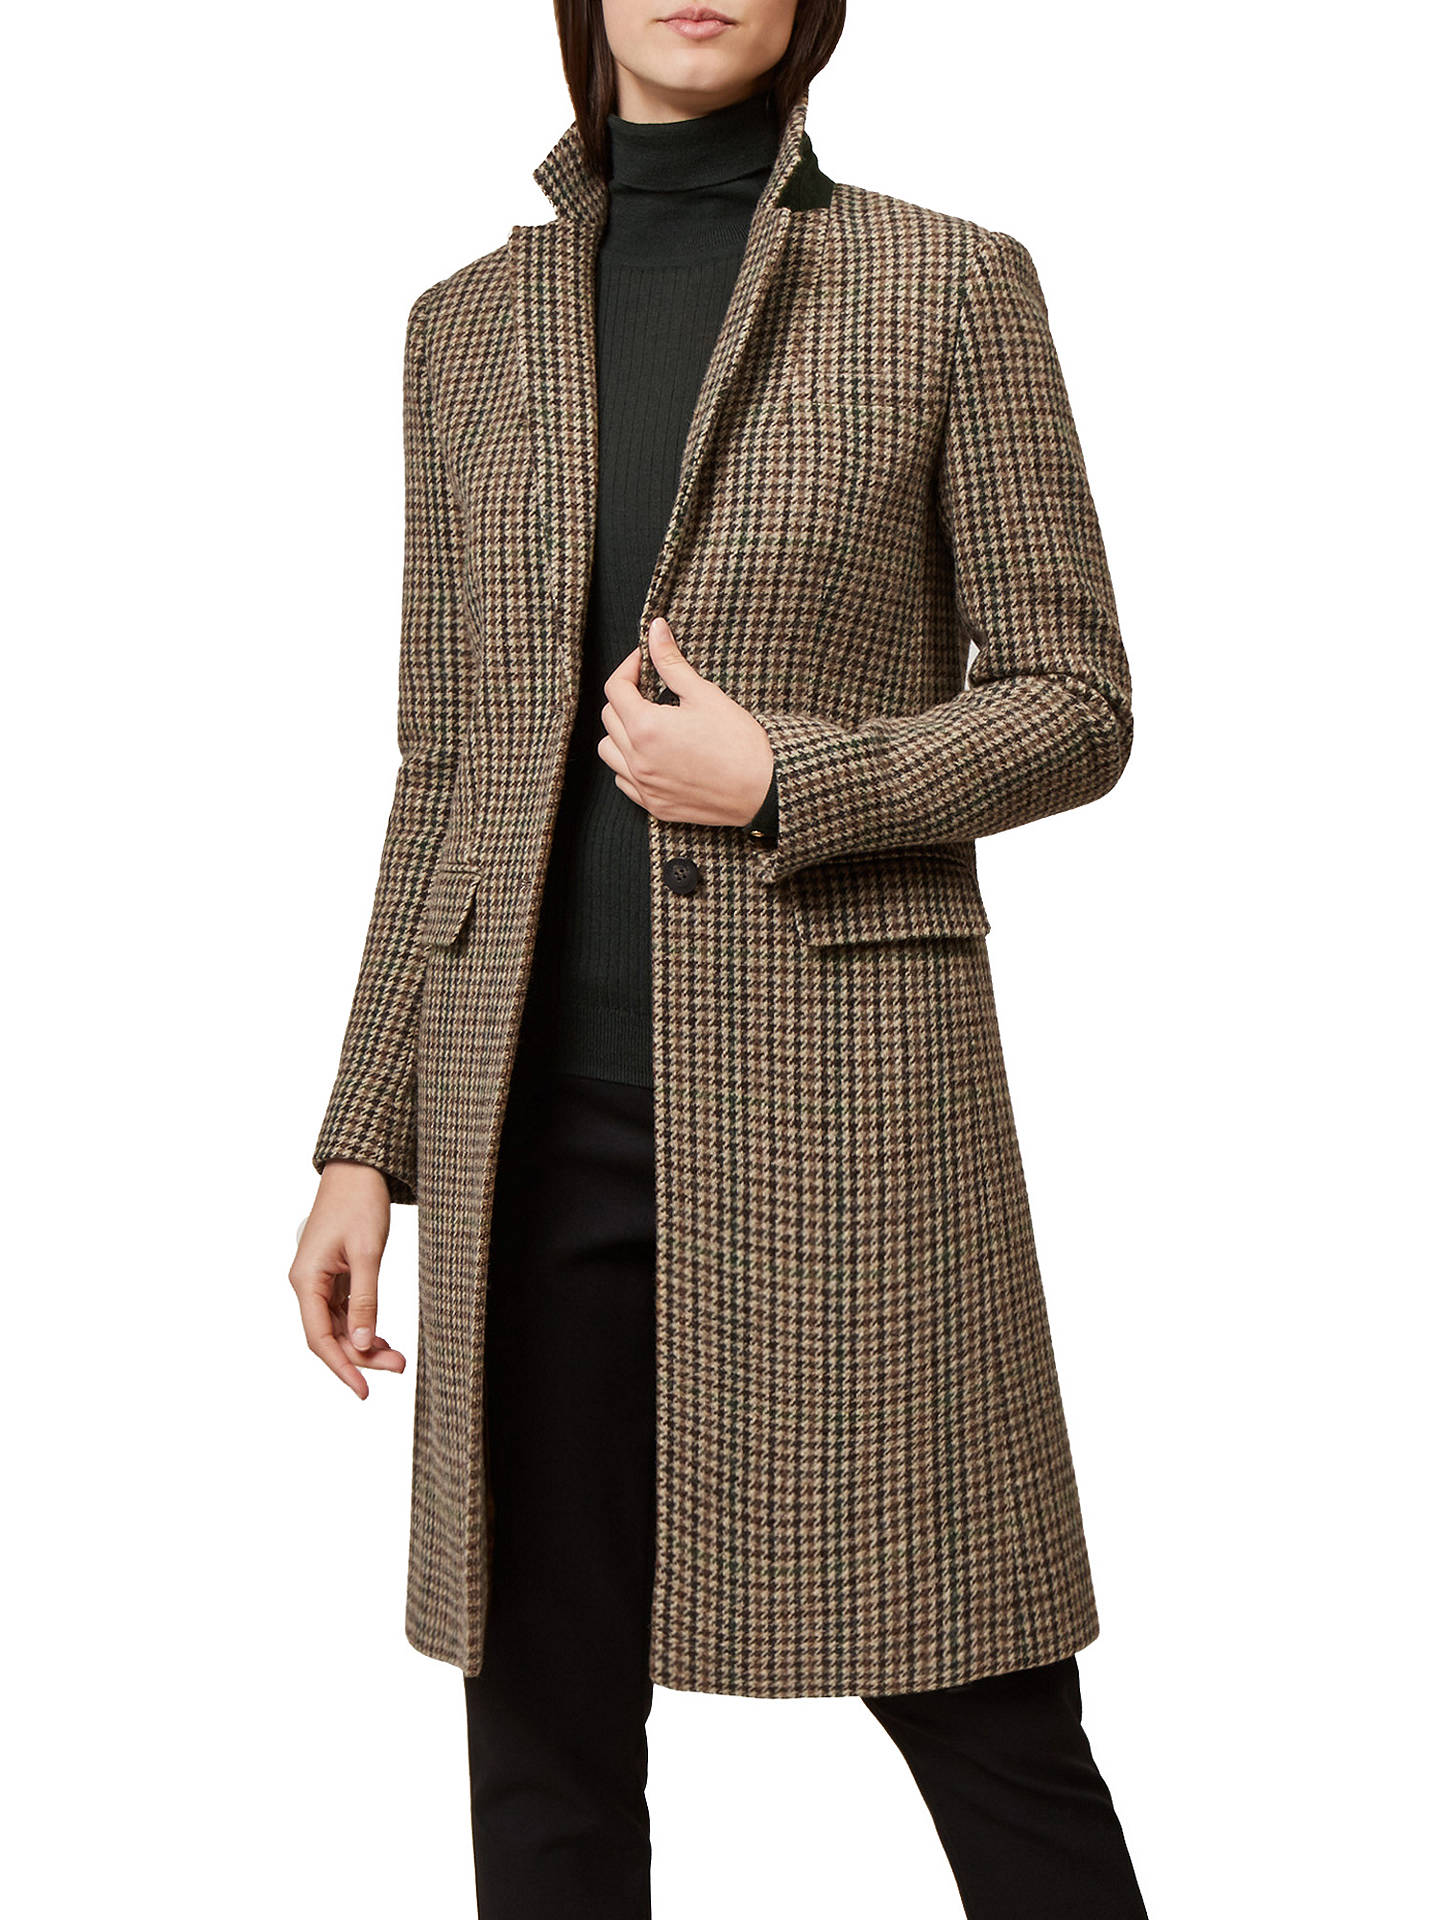 BuyHobbs Tilda Check Coat, Multi, 6 Online at johnlewis.com